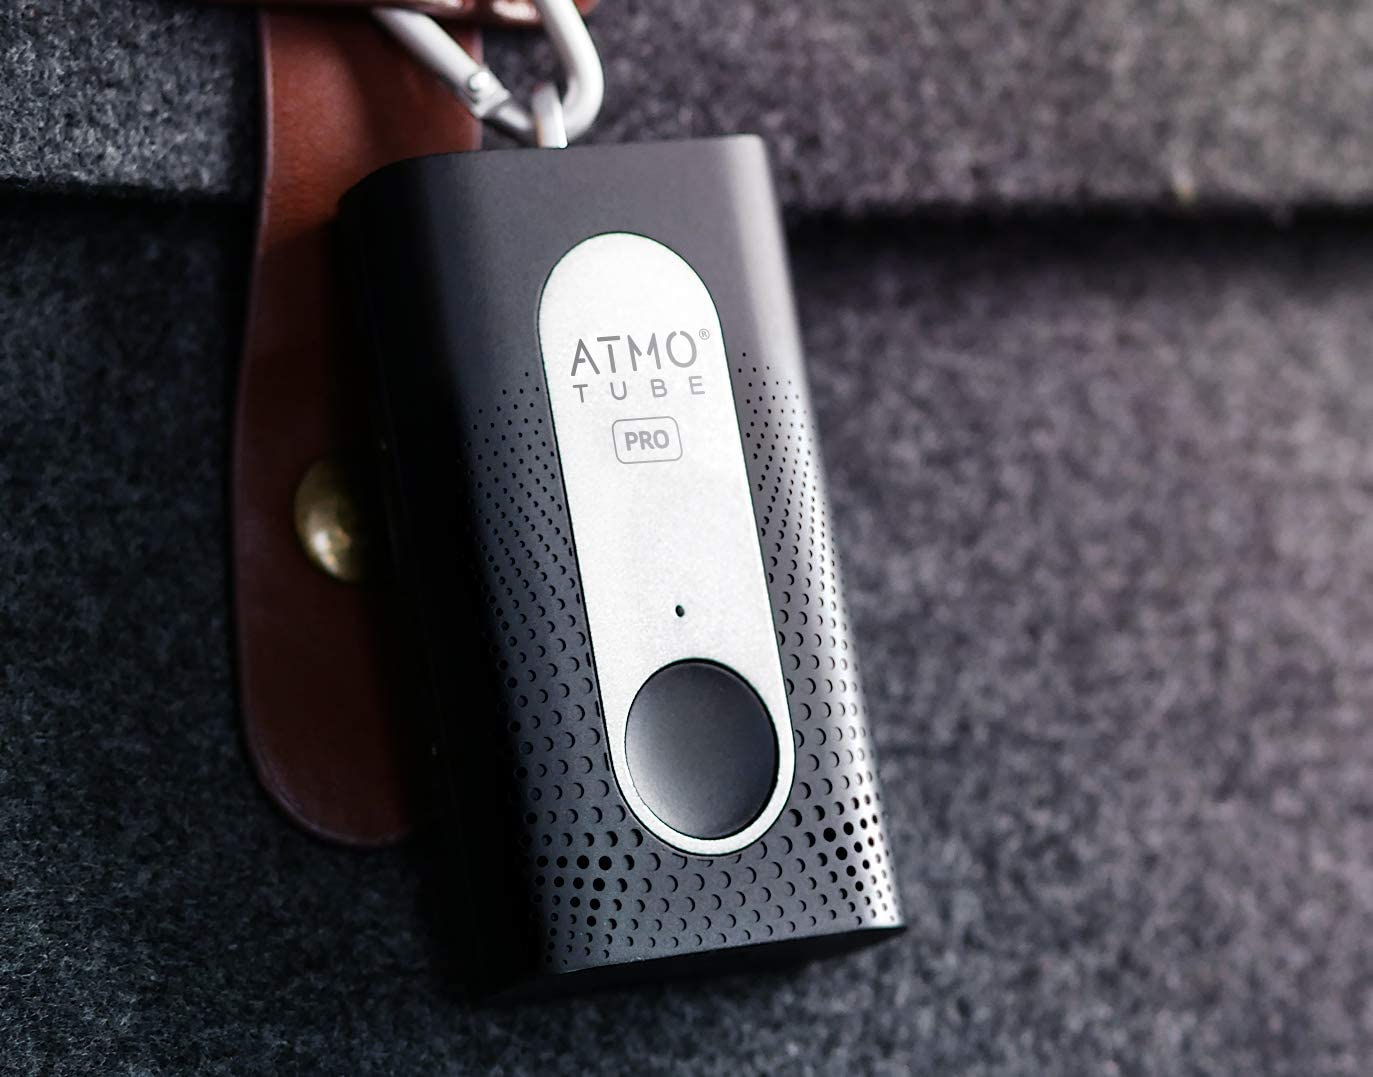 Atmotube Pro Portable Outdoor and Indoor Professional Air Quality Monitor